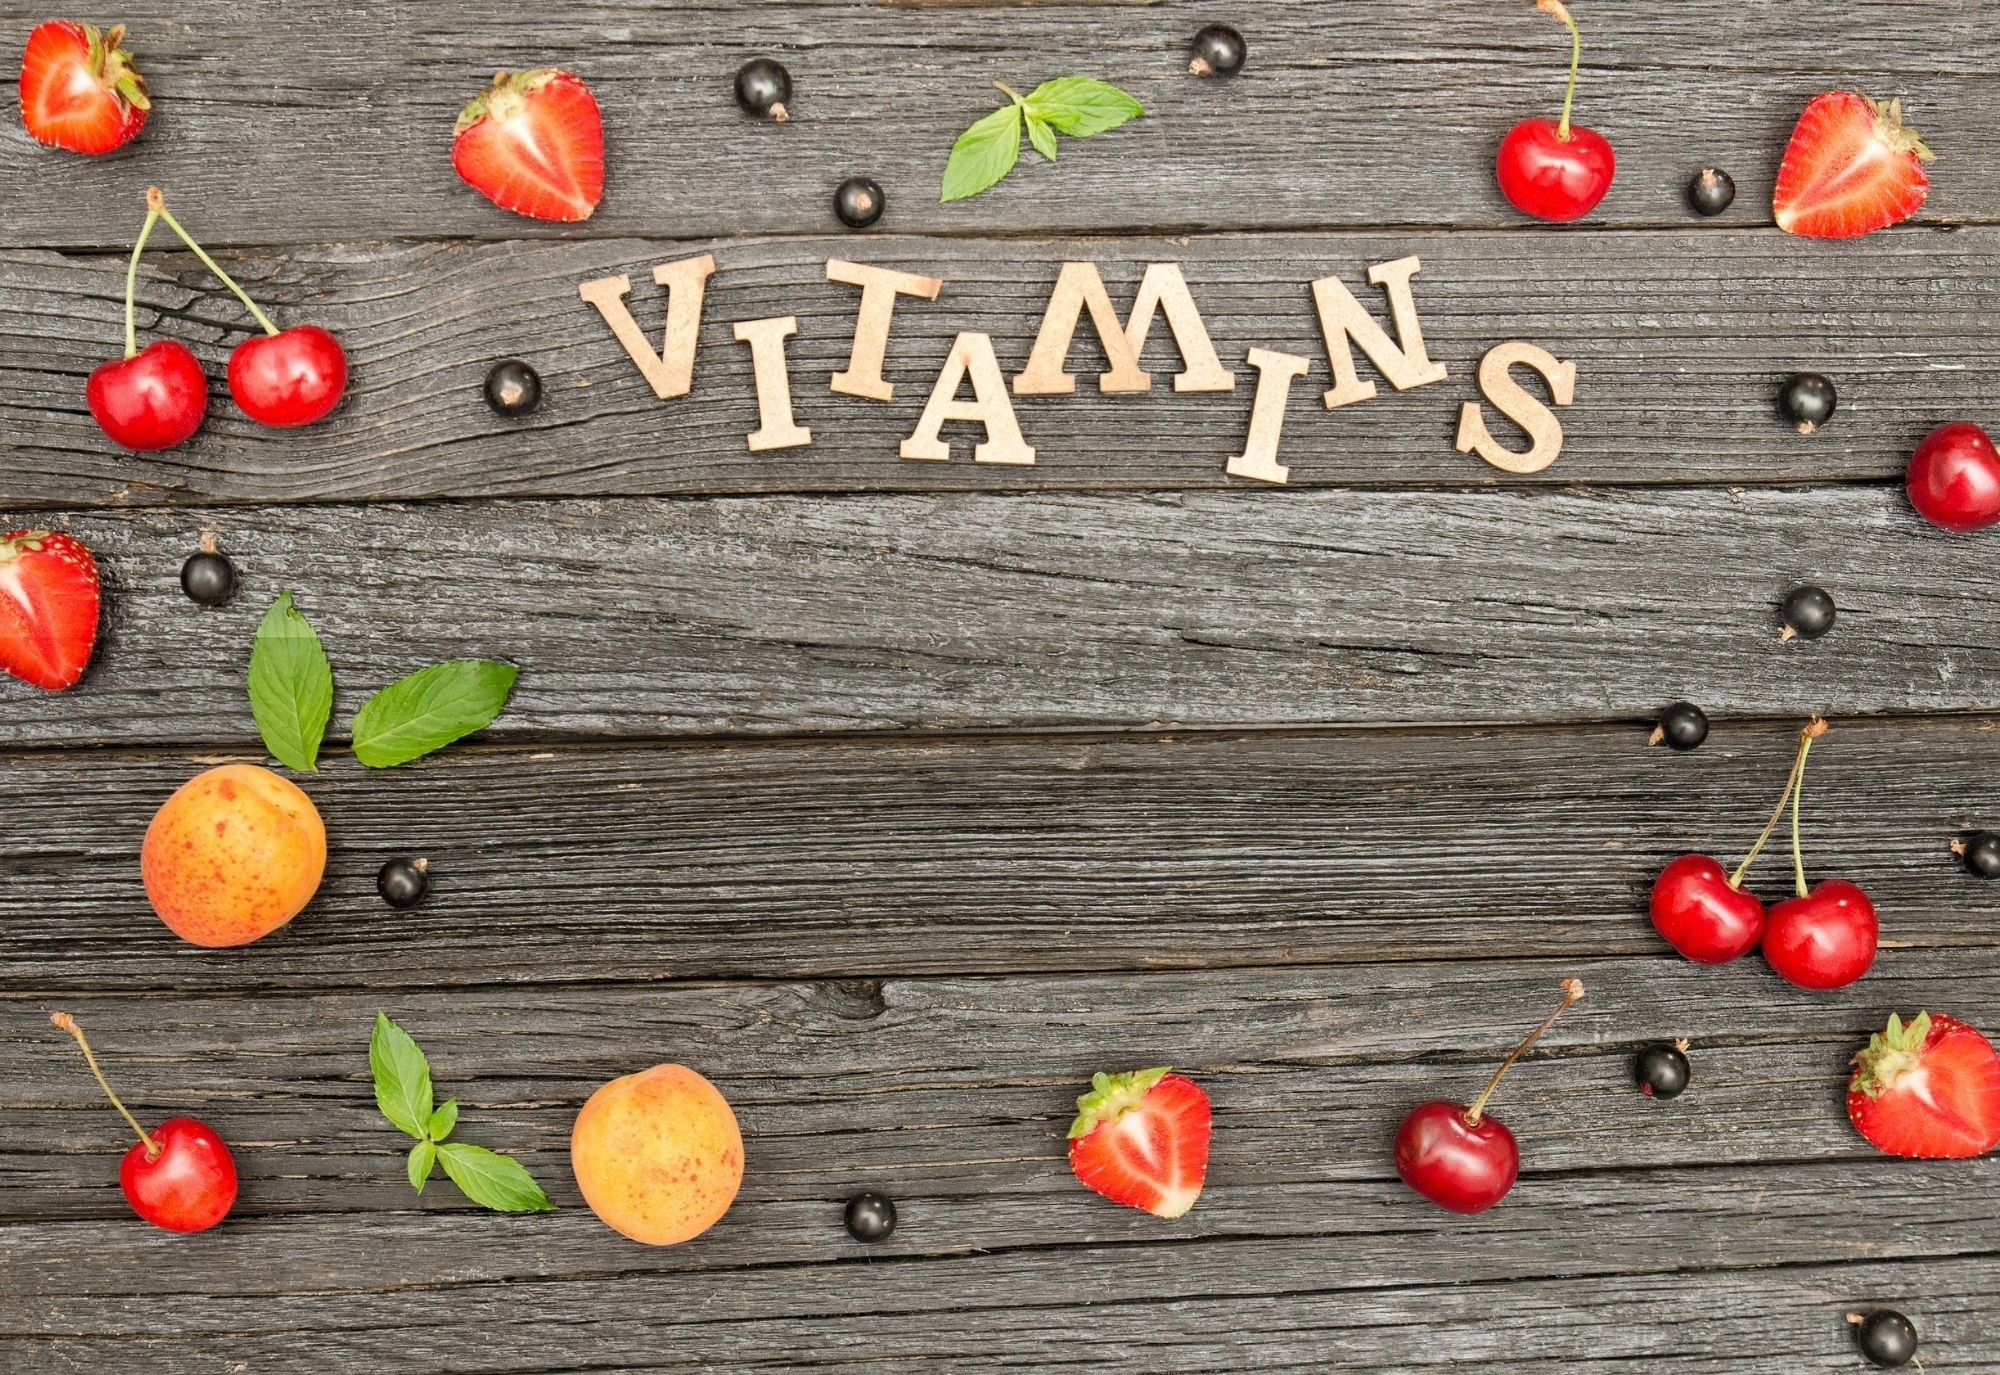 What vitamins should I take to gain weight?